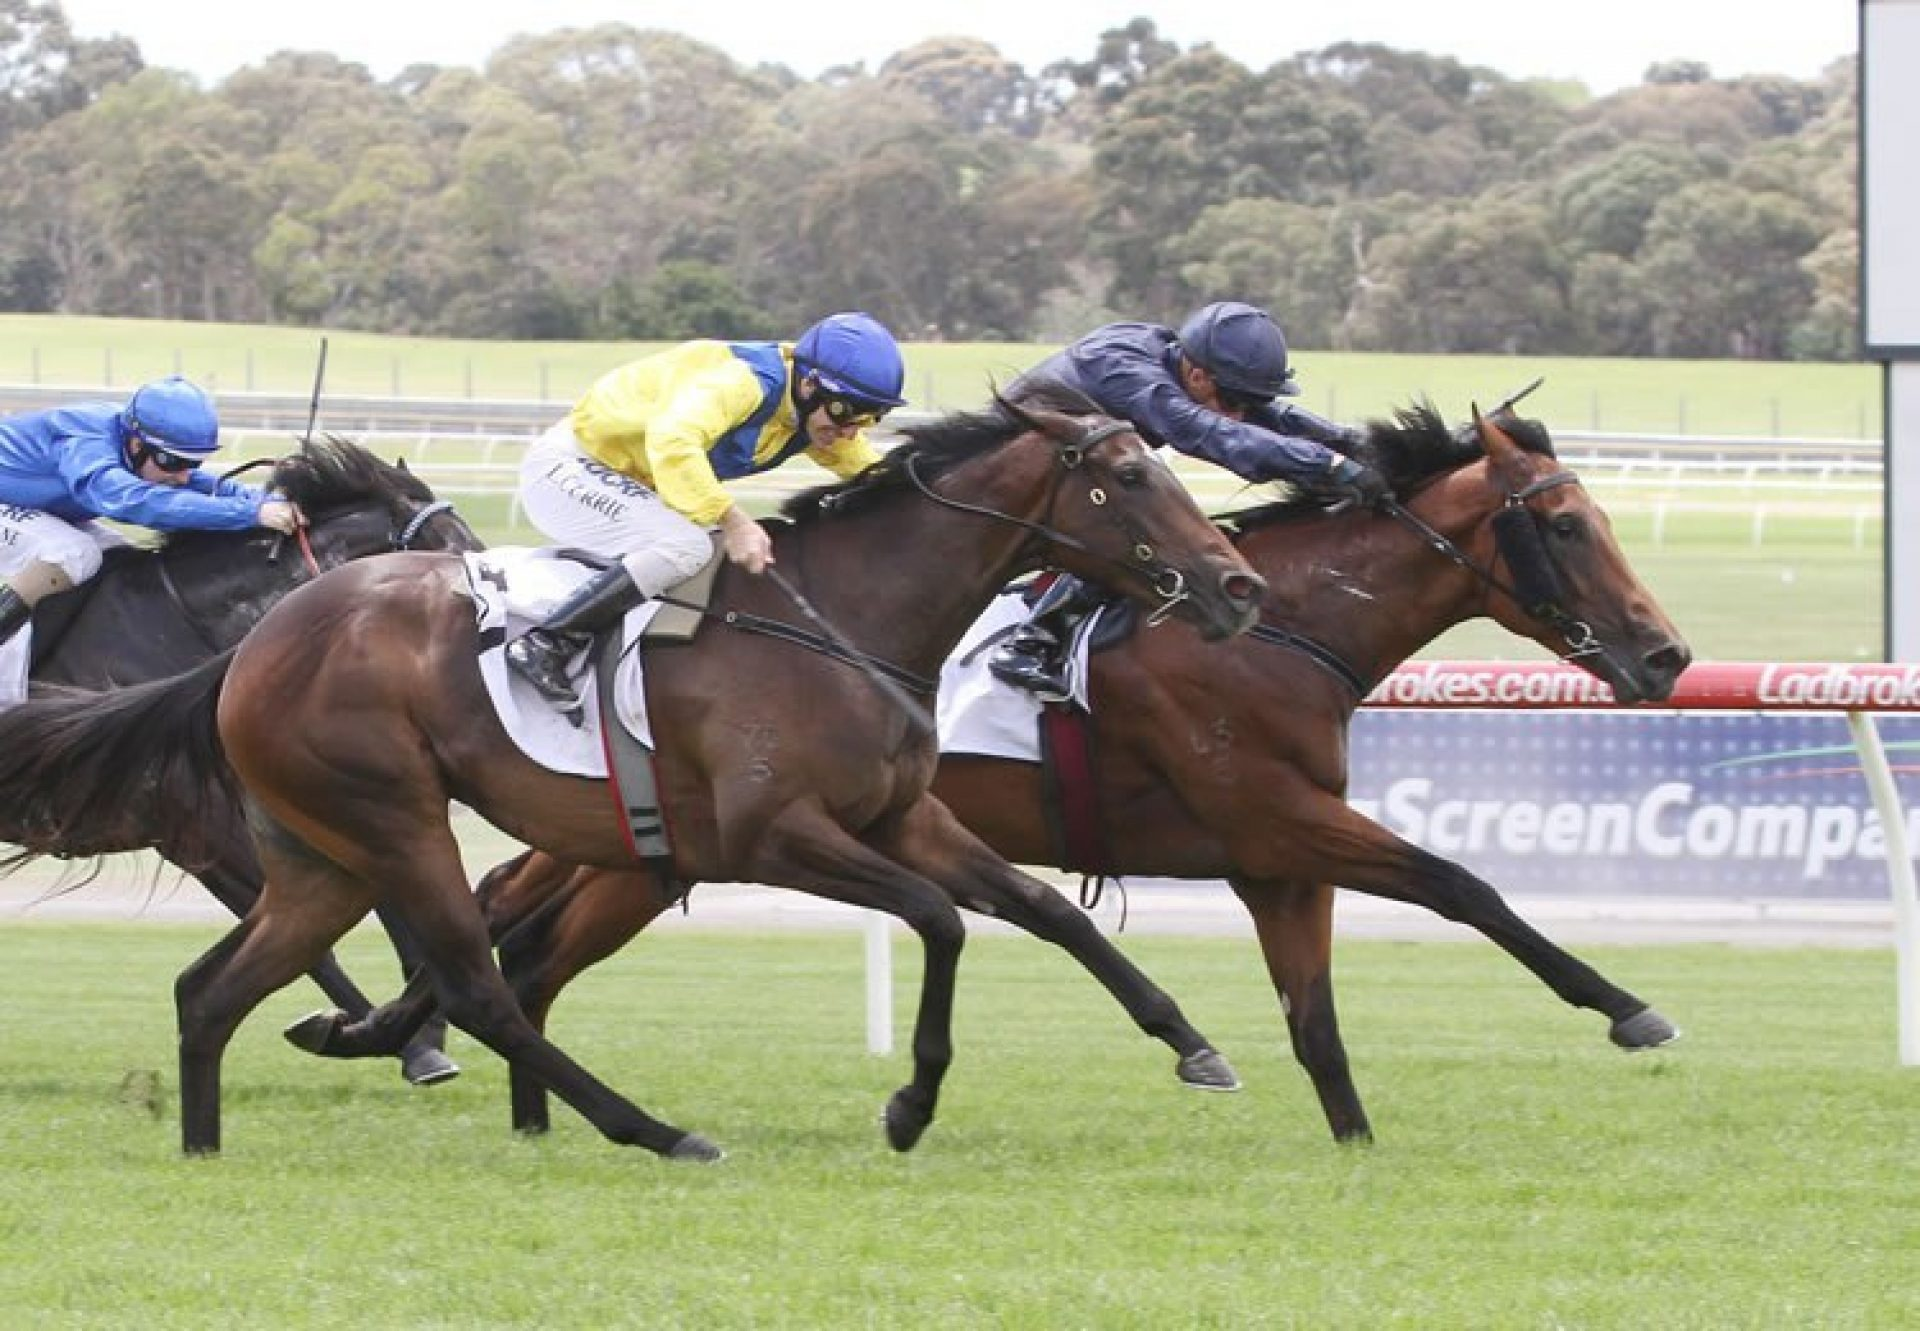 Long Leaf (Fastnet Rock) winning the Listed MRC Merson Cooper Stakes at Sandown